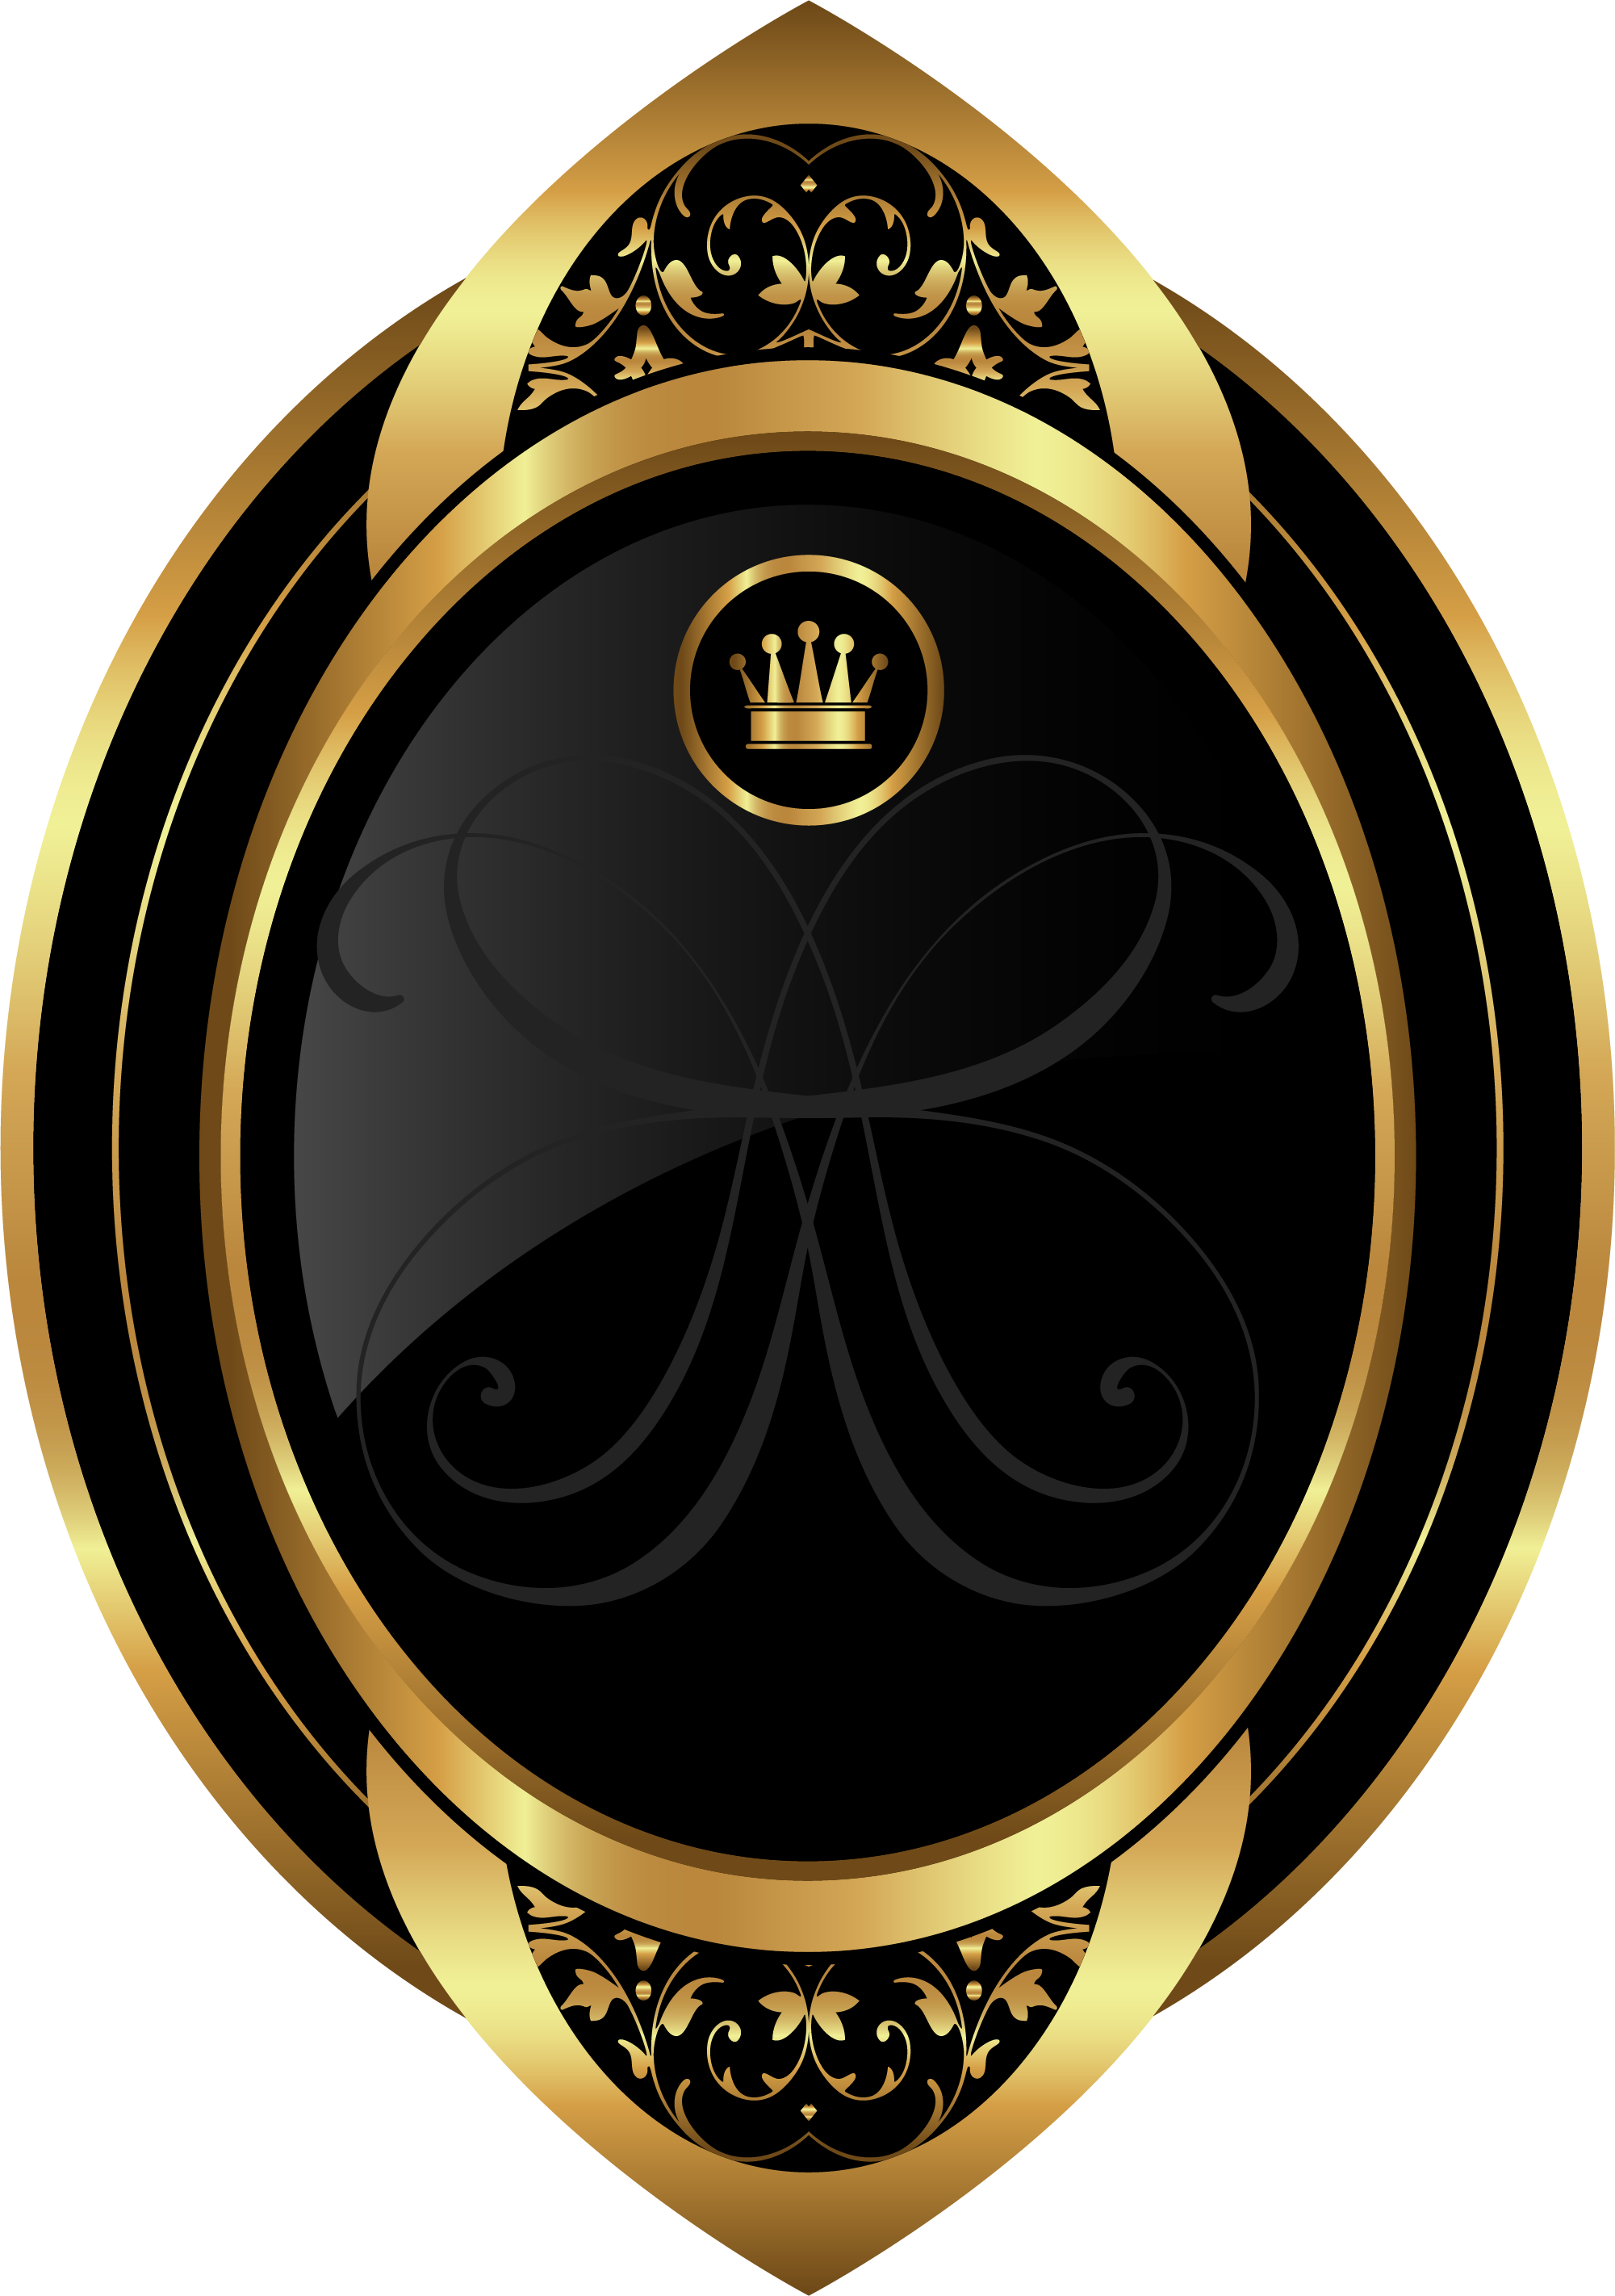 Painted Golden Crown Hand Free Clipart HQ PNG Image